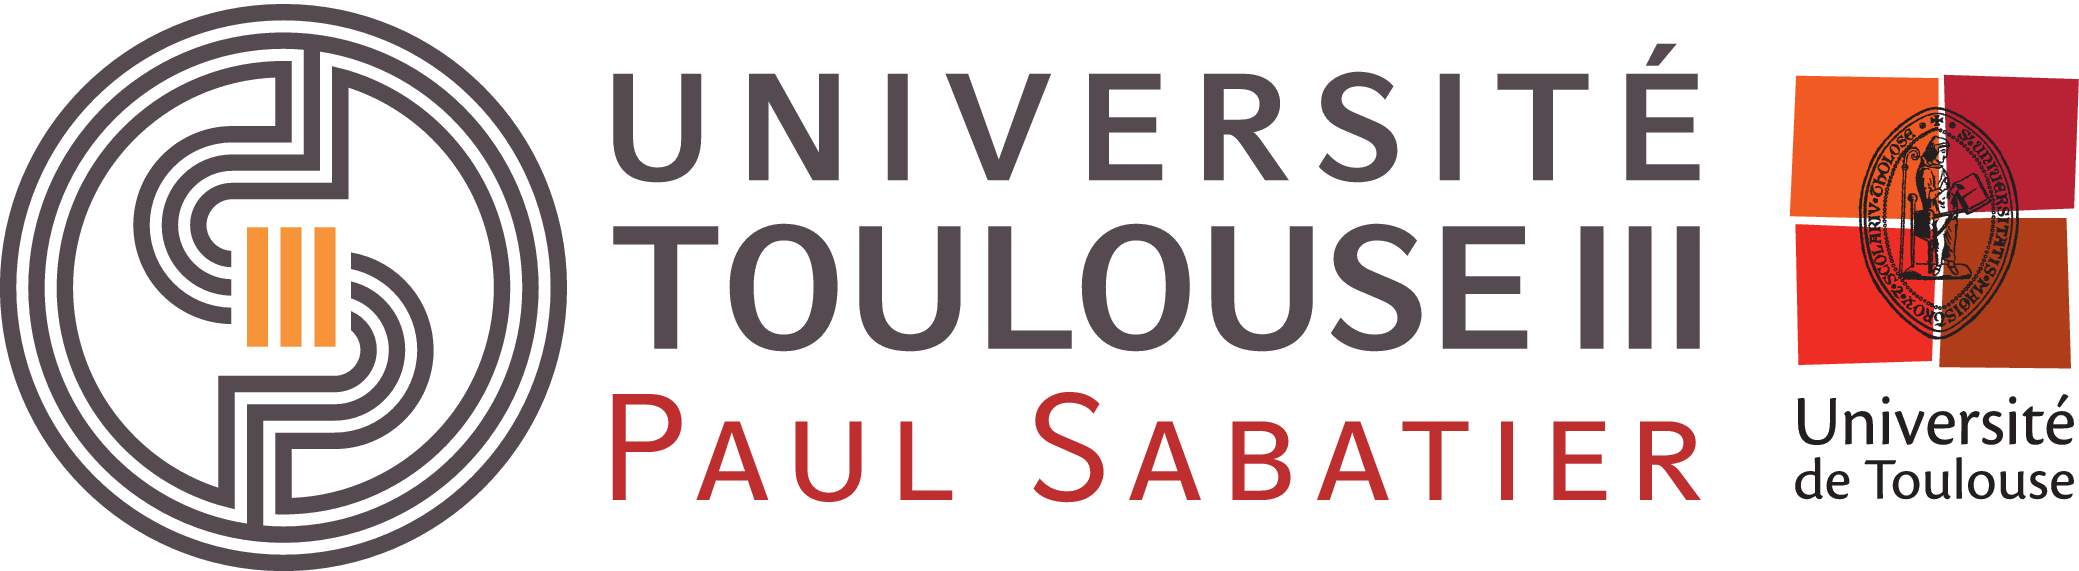 Paul Sabatier University